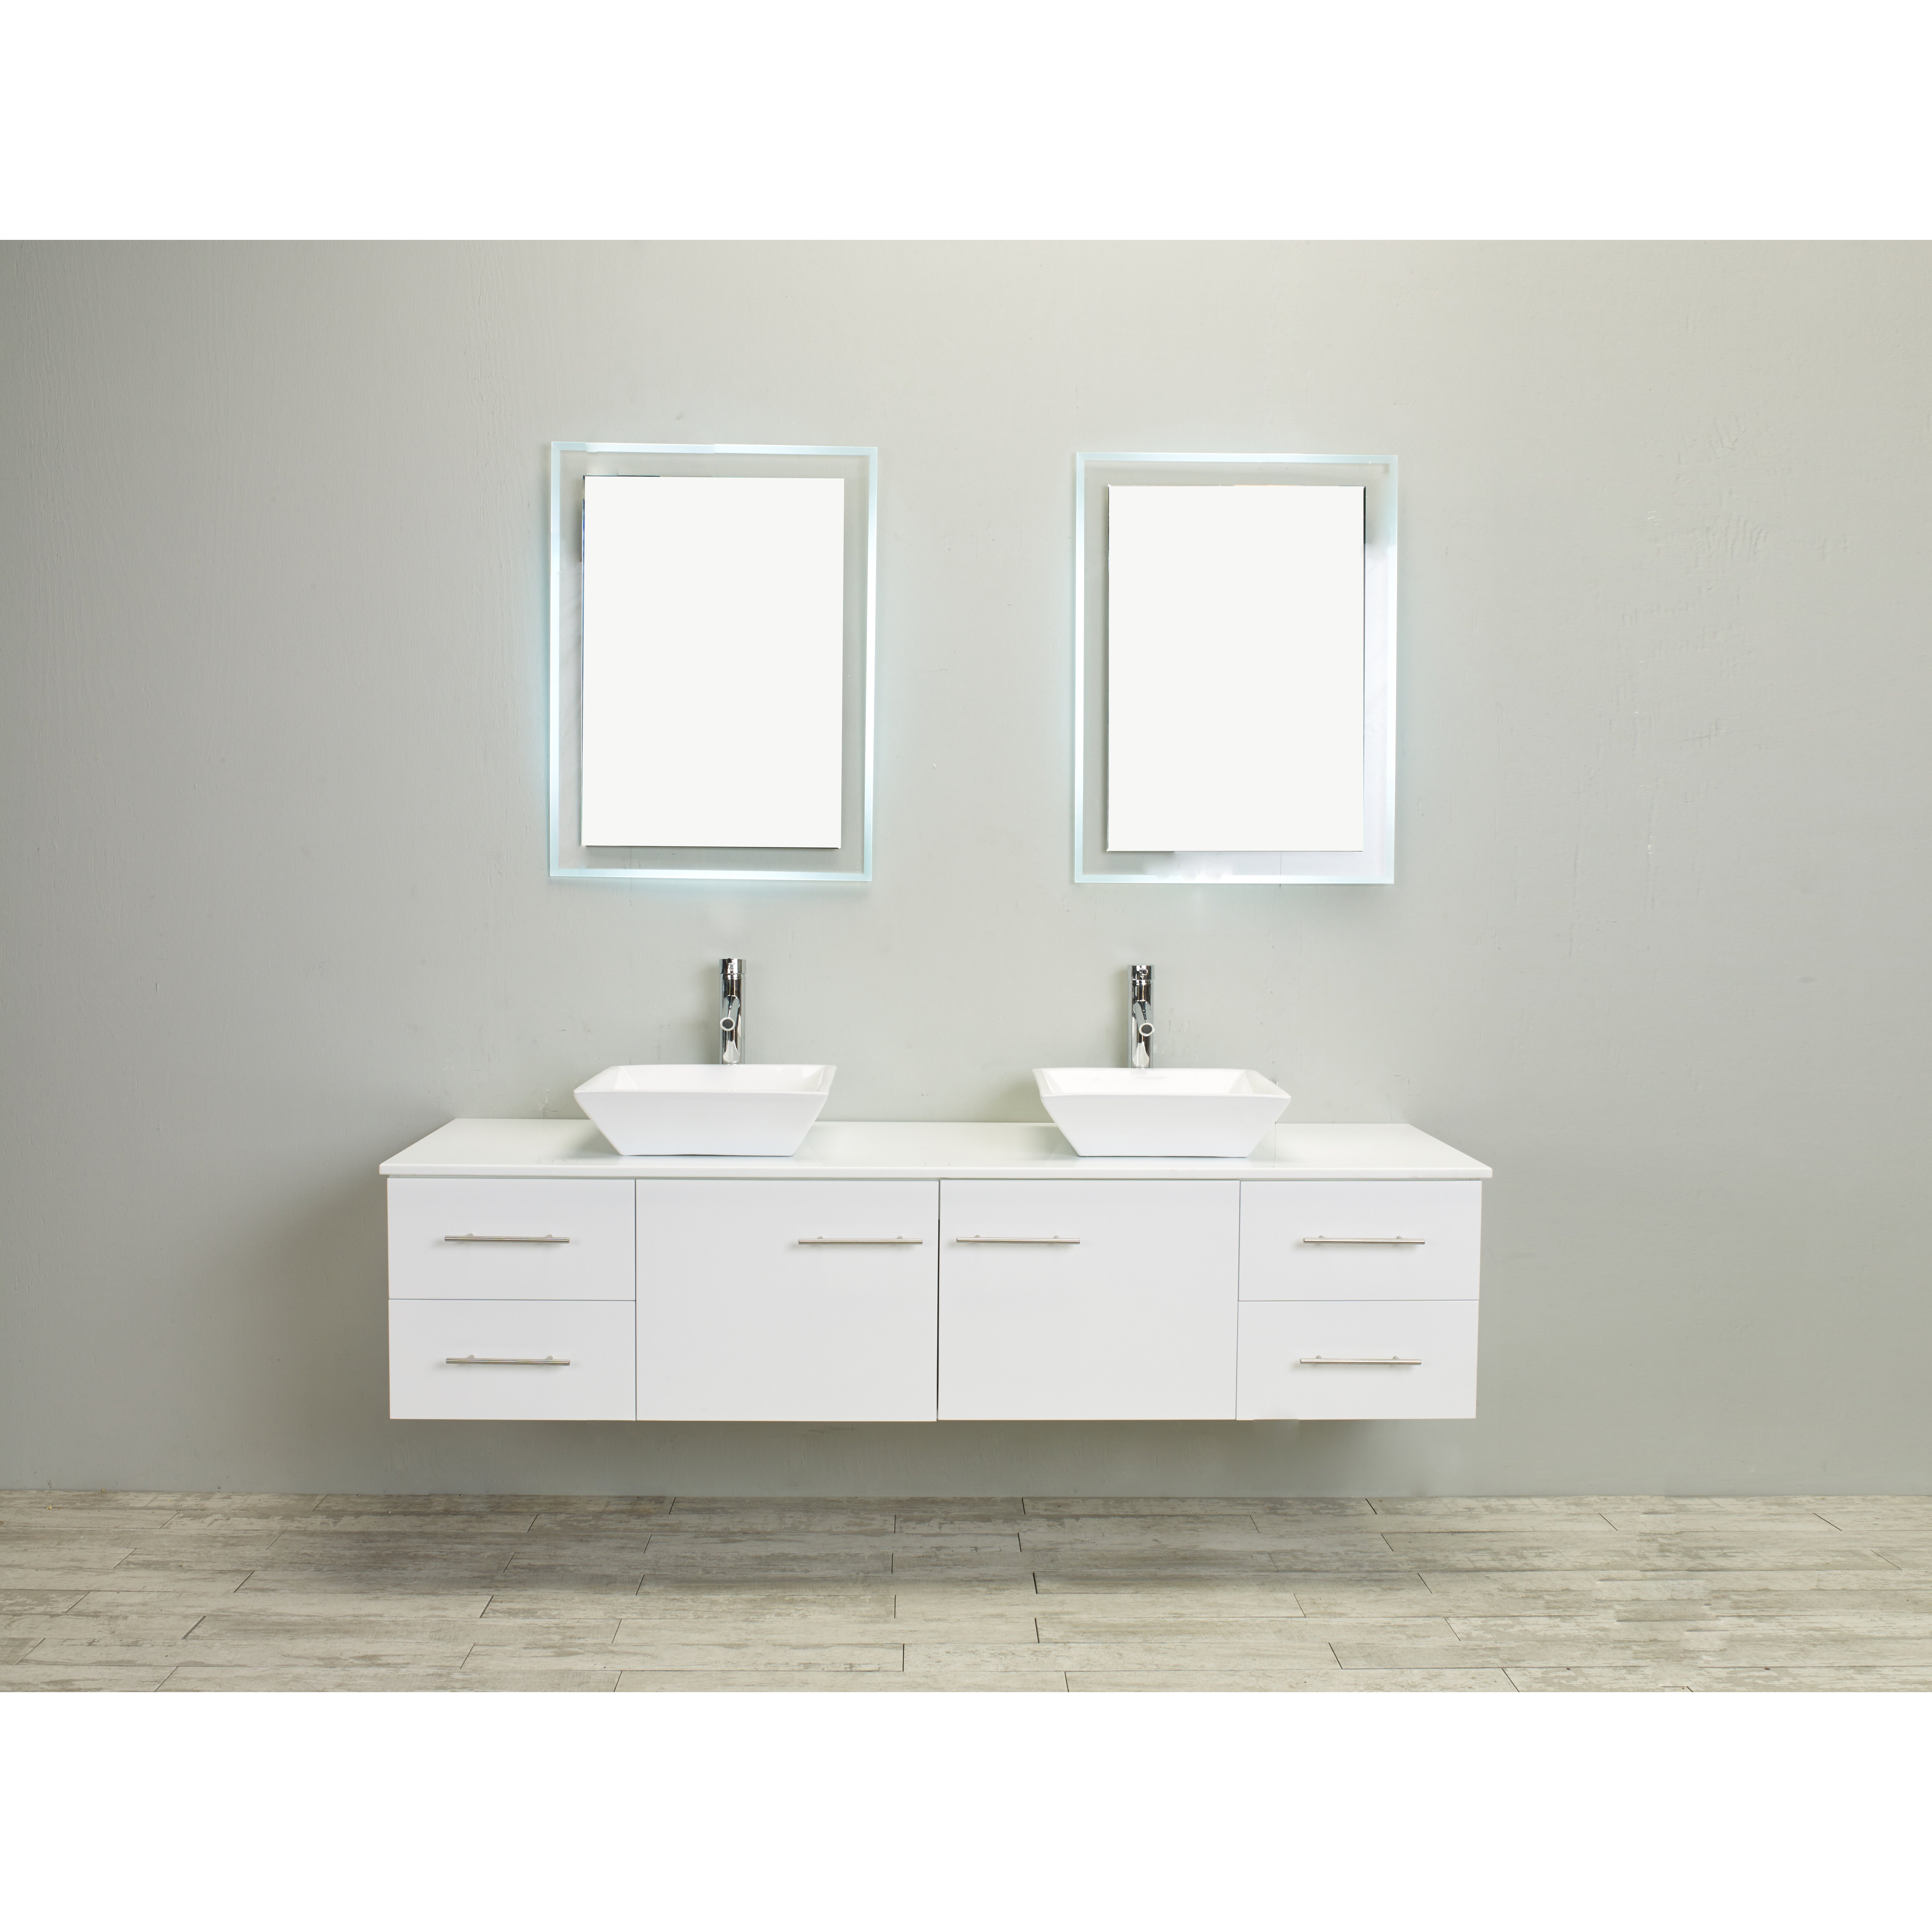 Eviva totti wave 72 inch white modern double sink bathroom for Bathroom vanity tops for sale